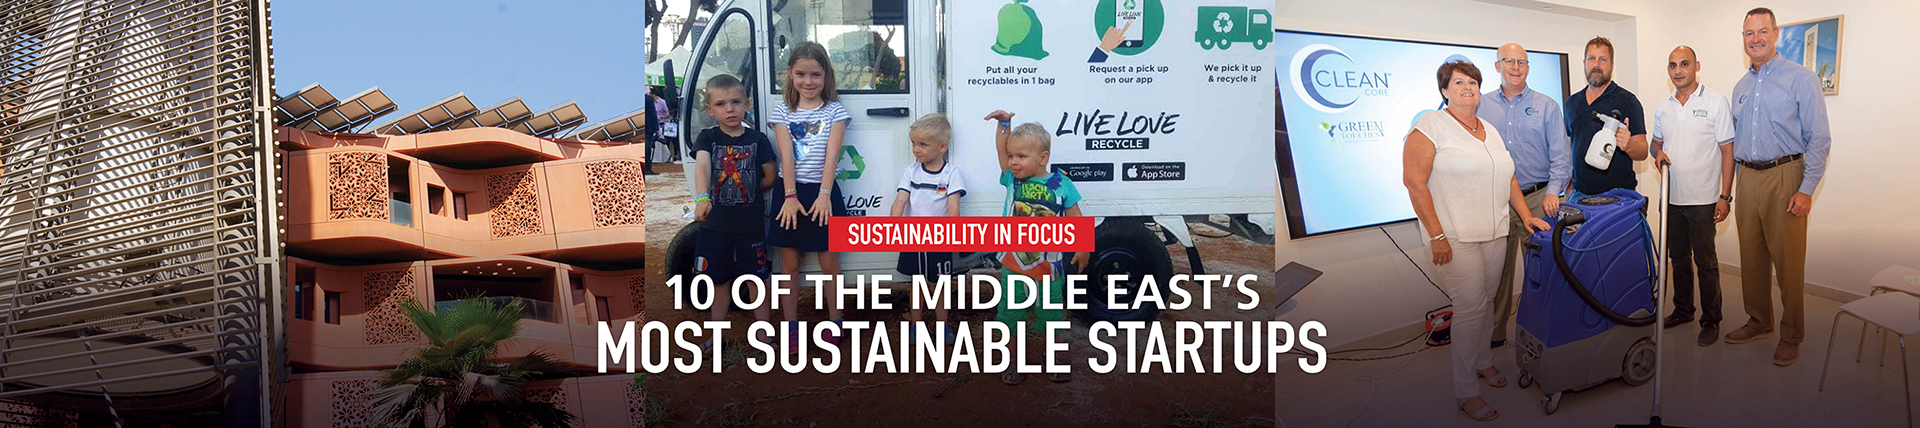 10 of The Middle East's Most Sustainable Startups